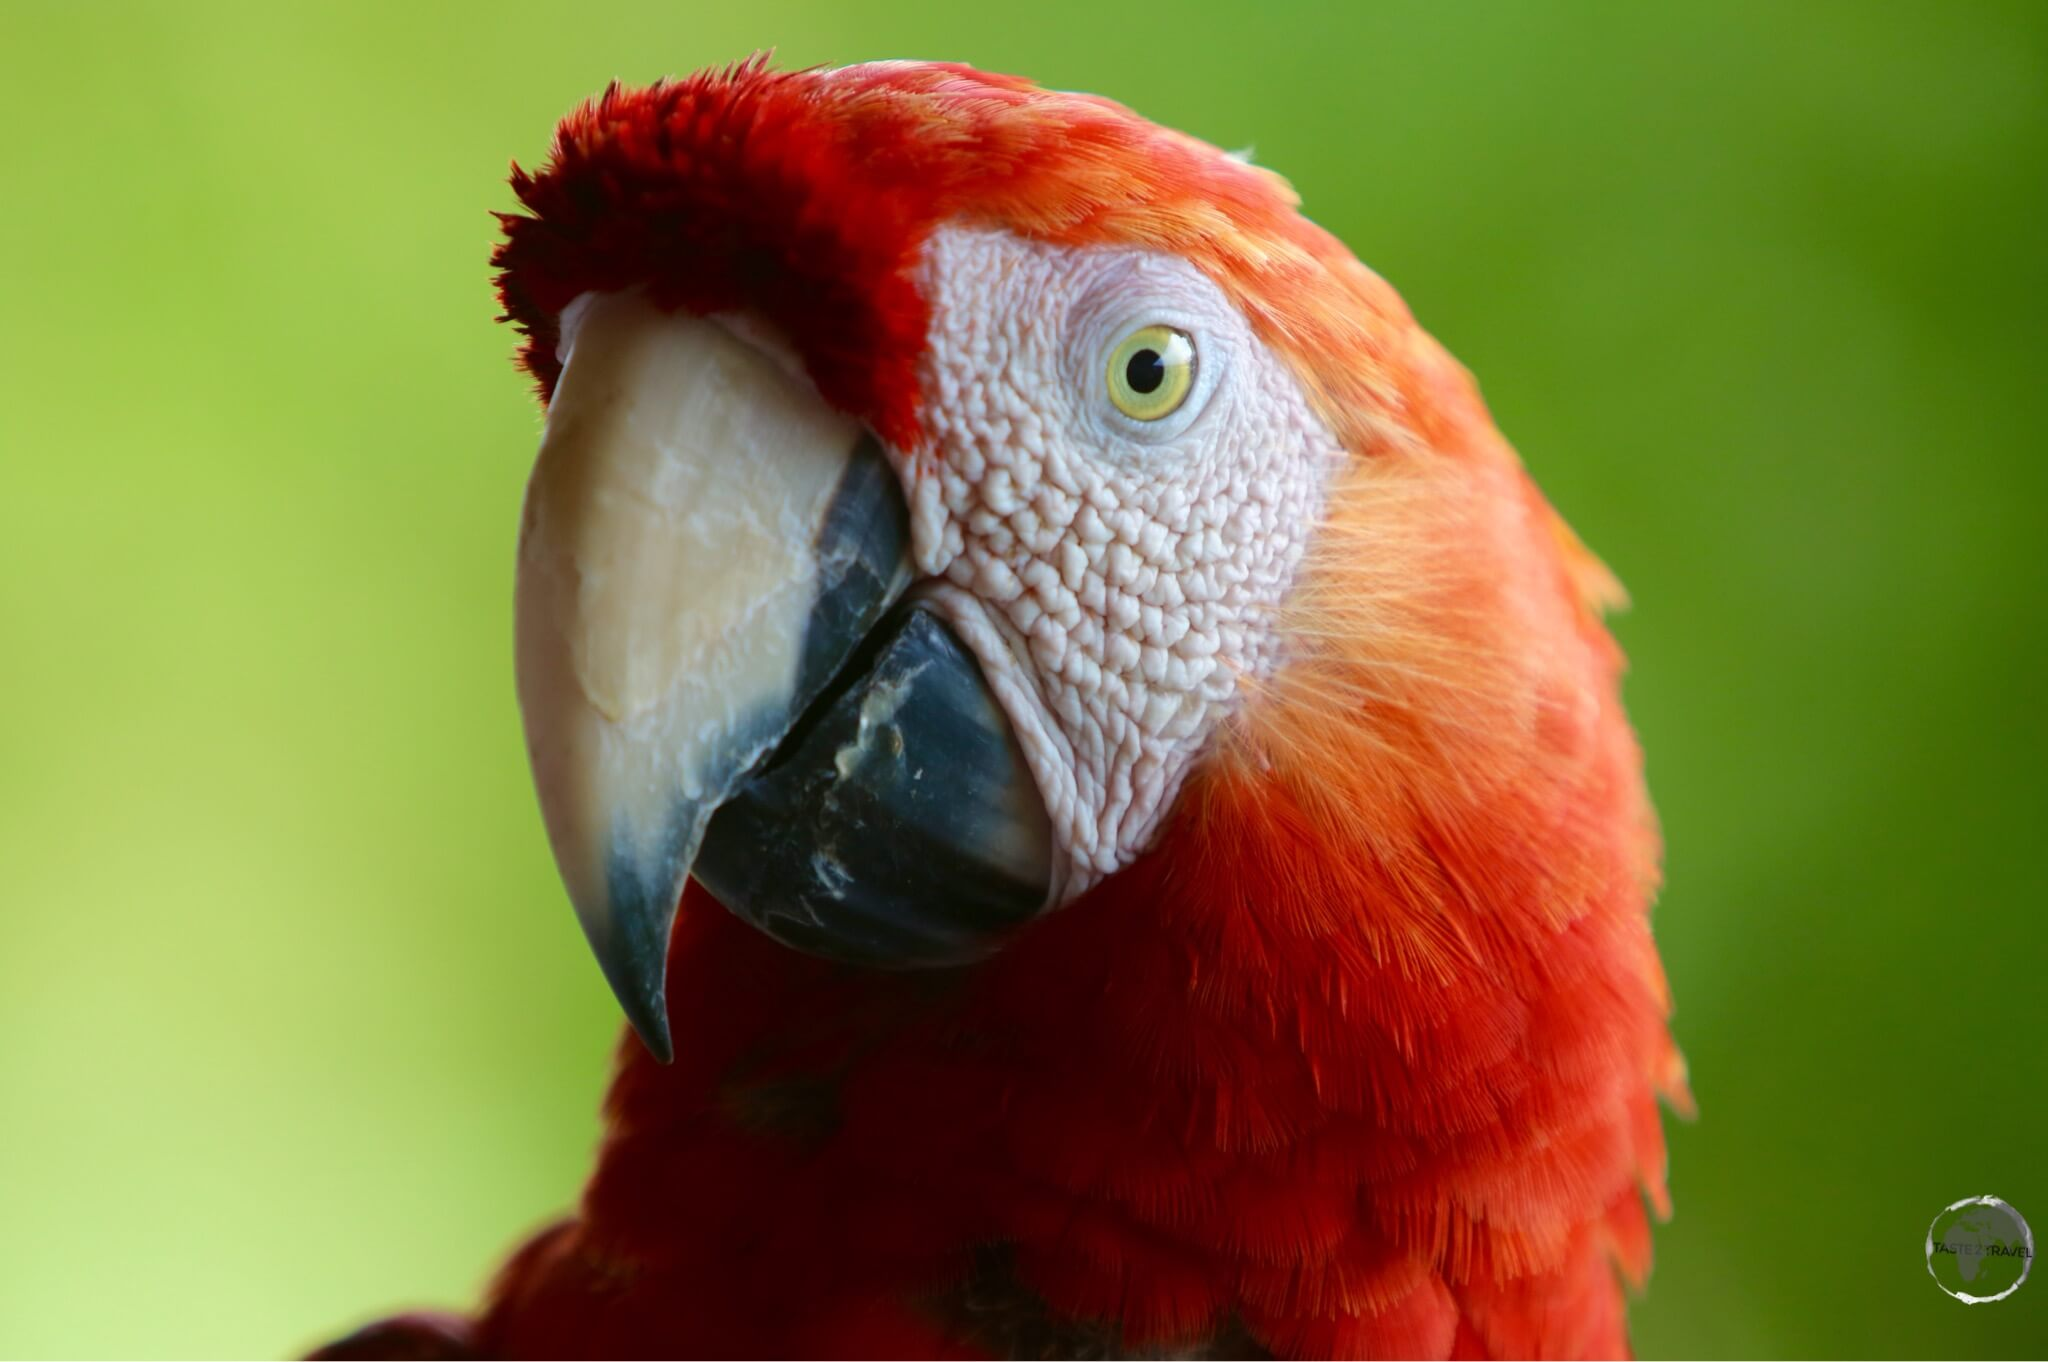 A curious Macaw.